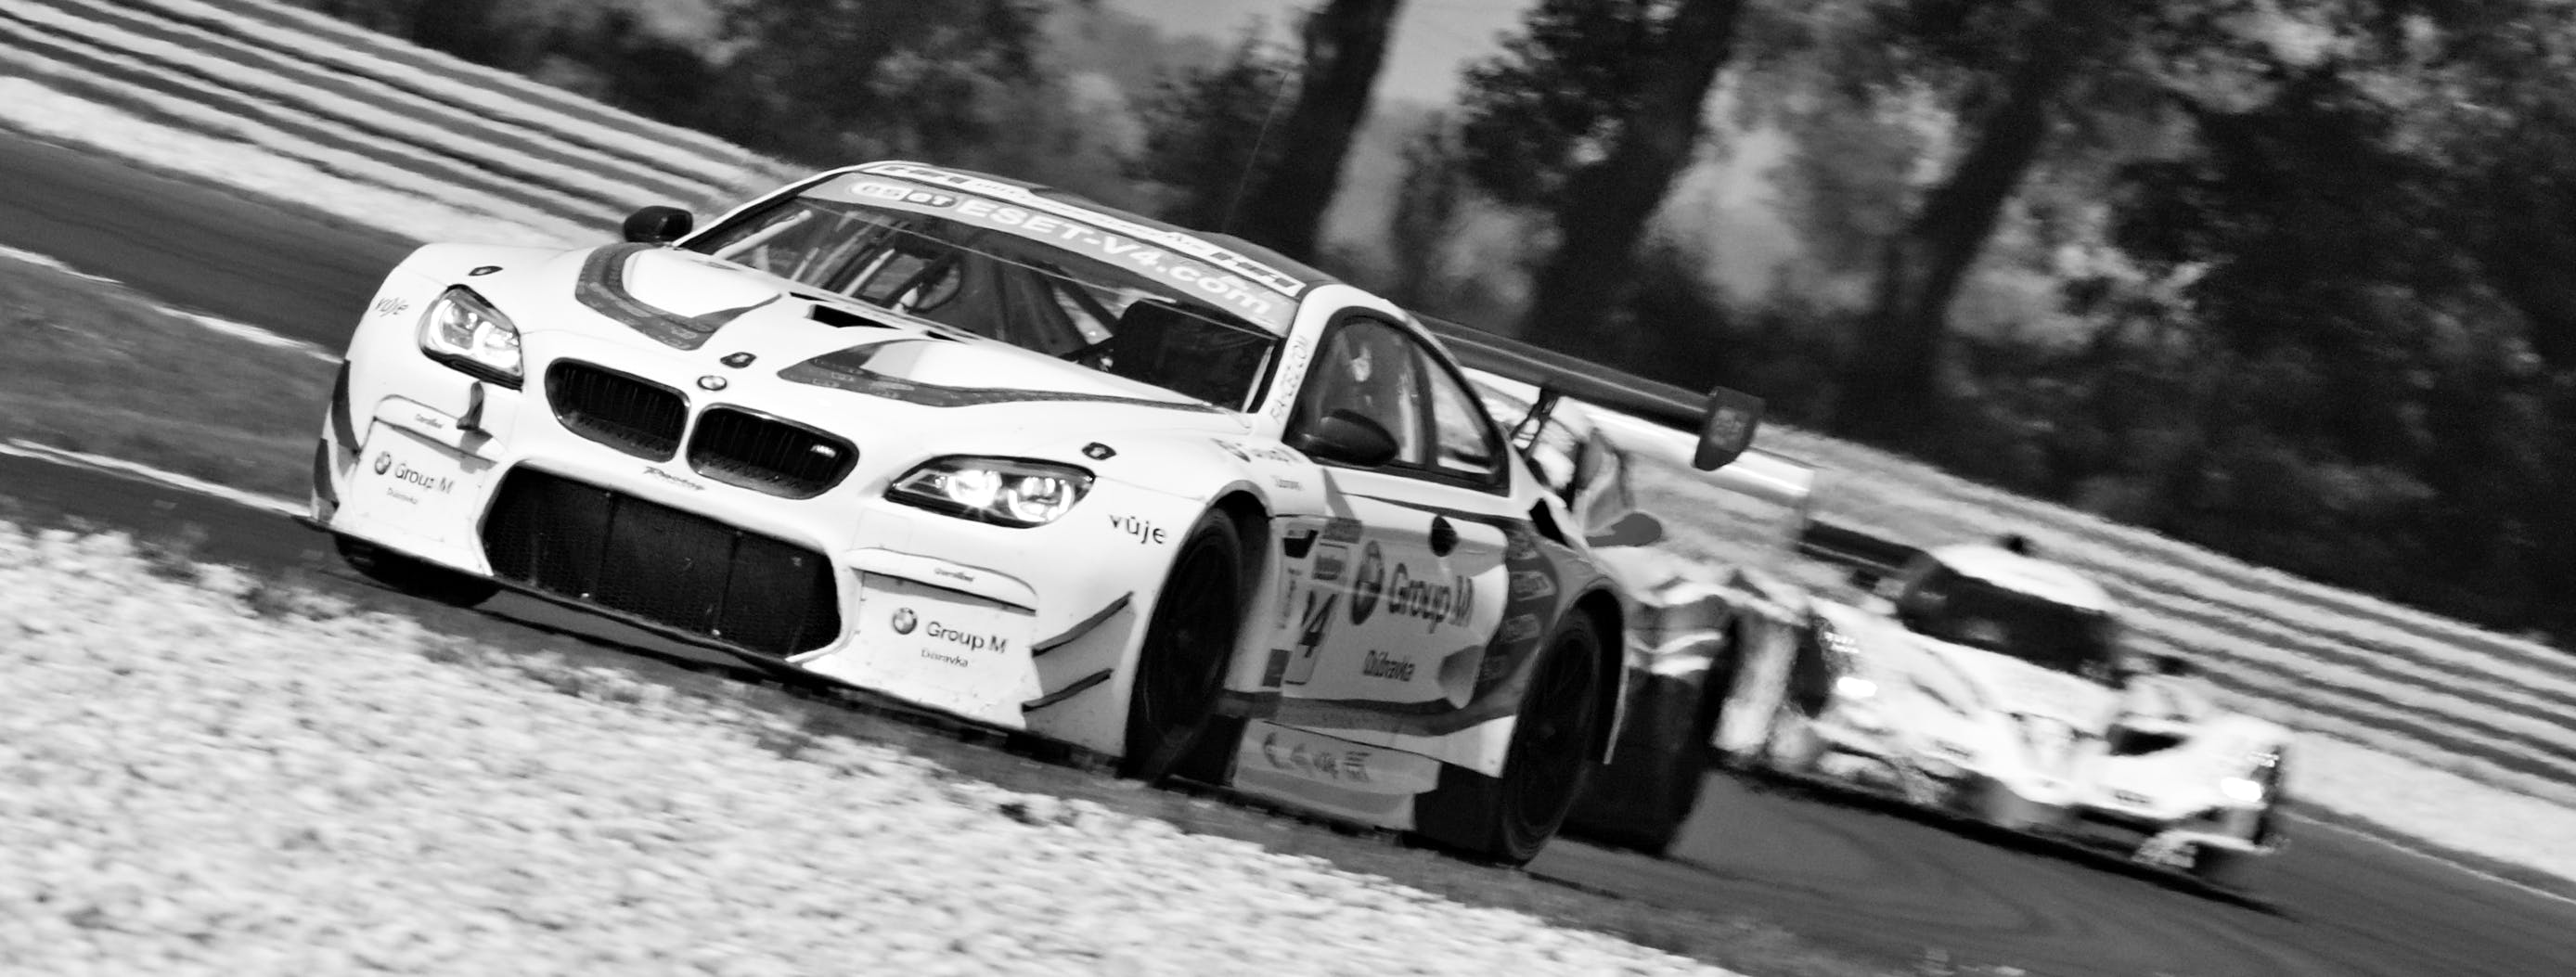 Free stock photo of black-and-white, bmw m6, car, motor racing